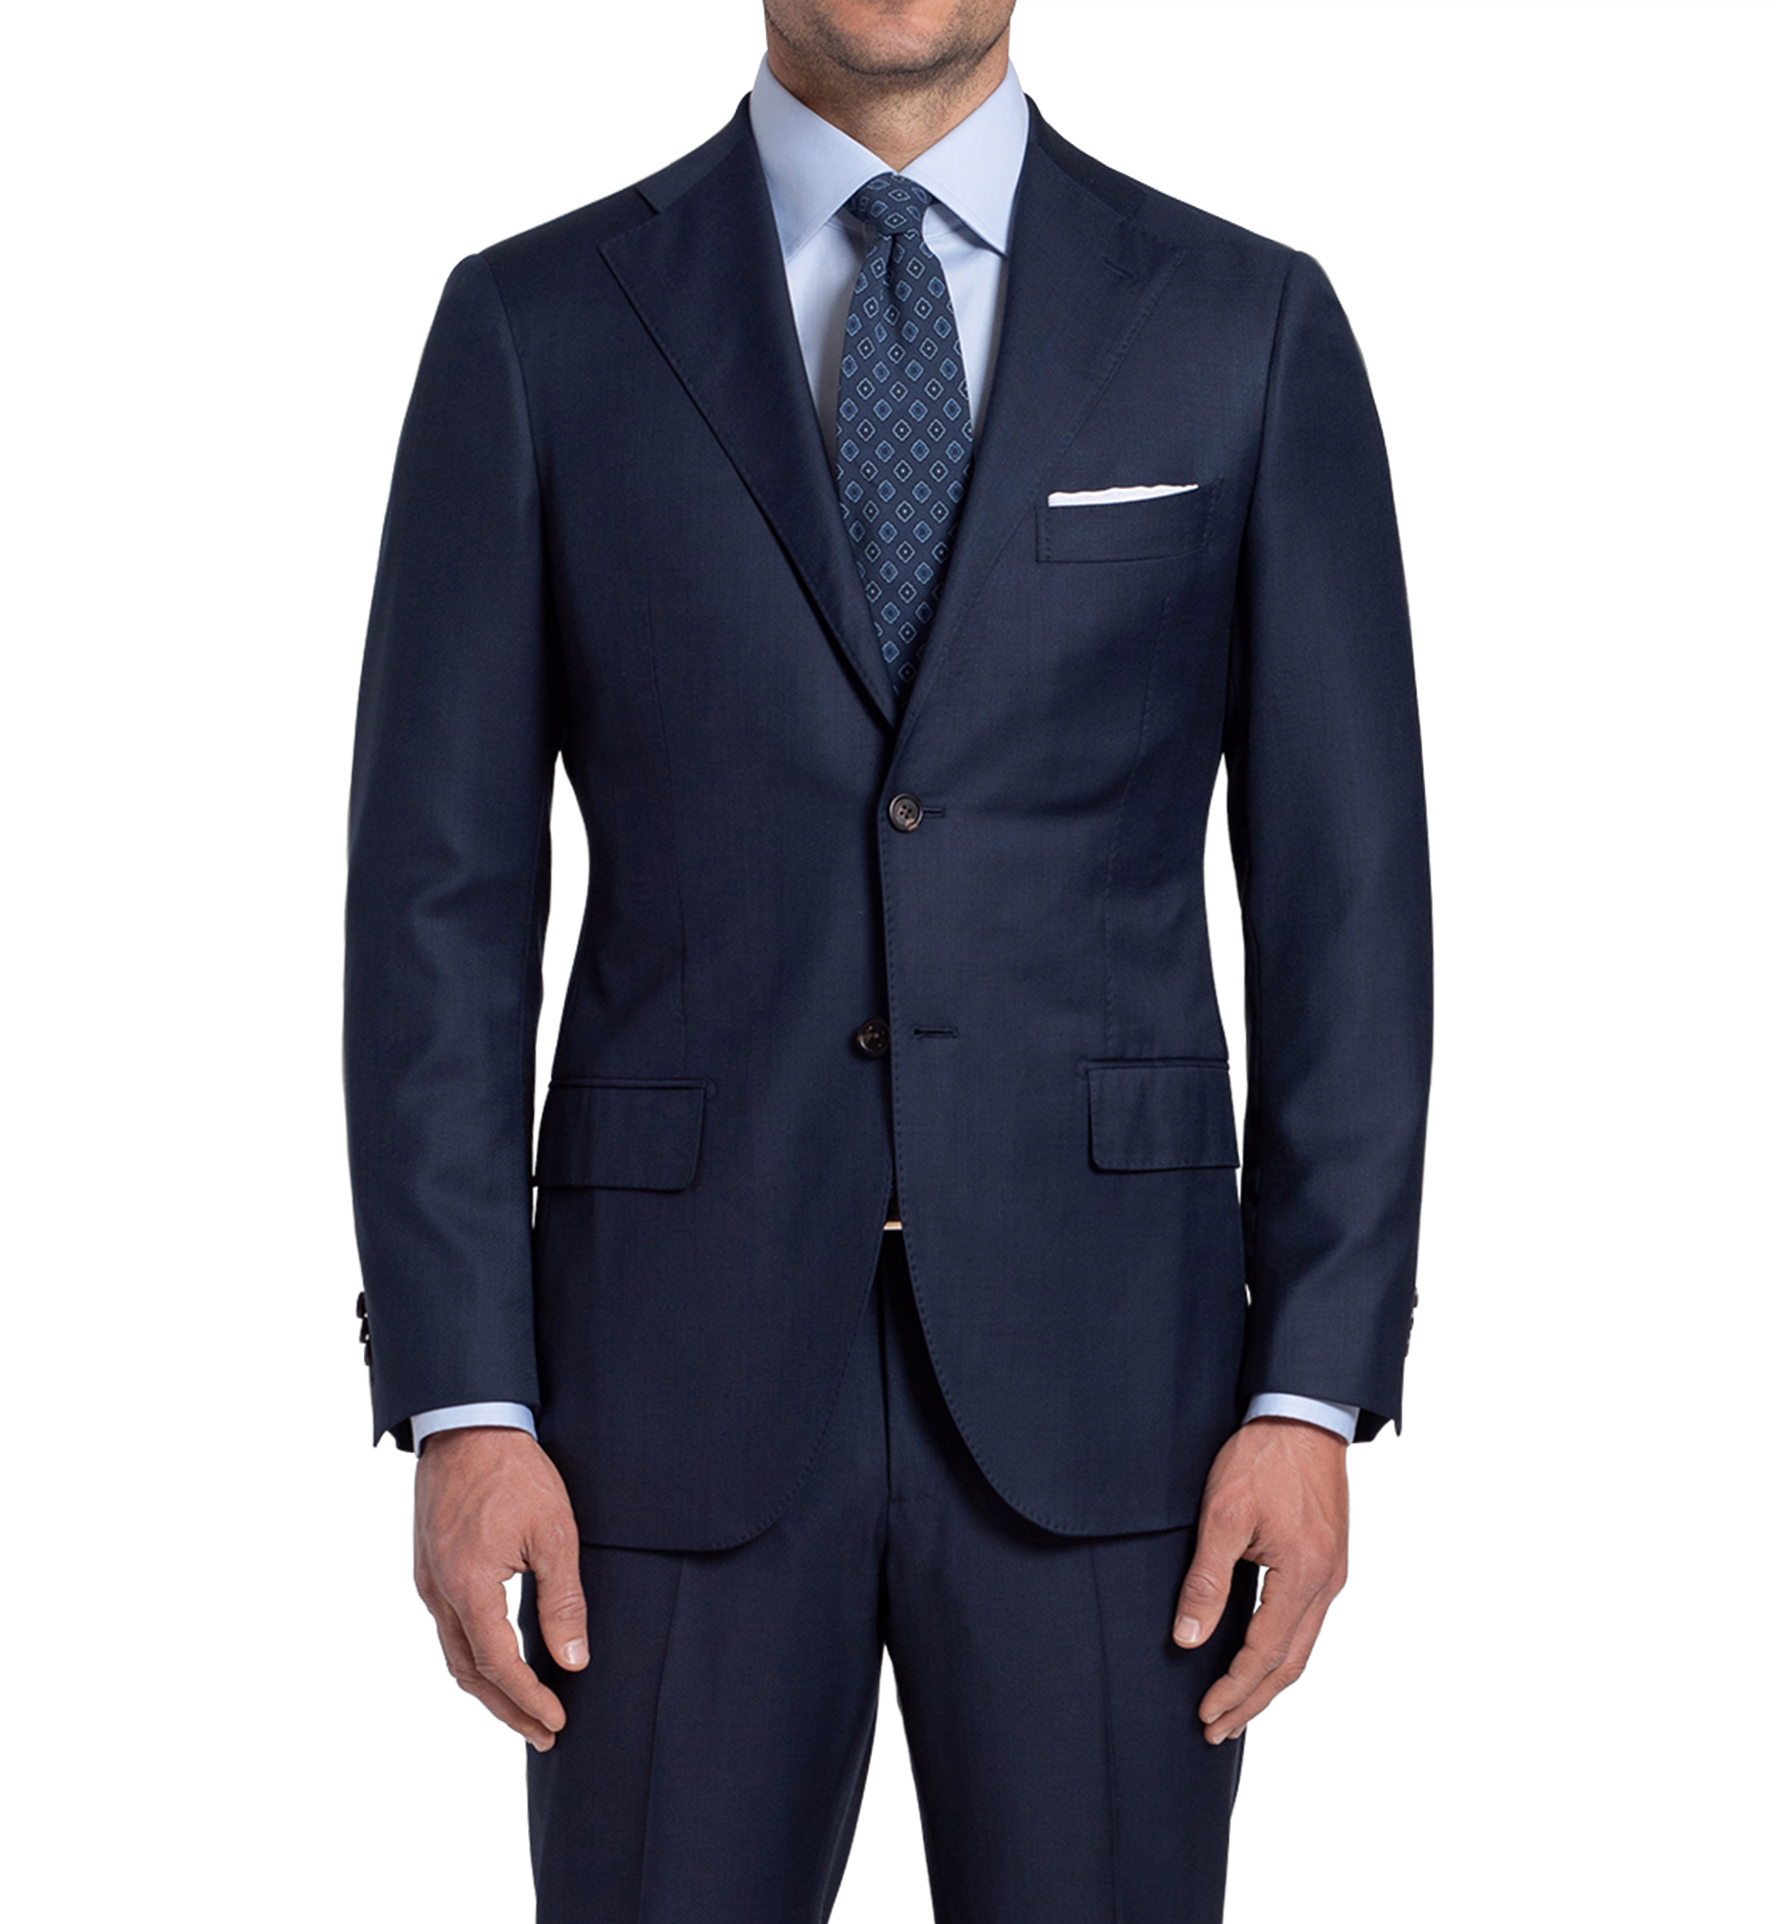 Zoom Image of Allen Navy S130s Sharkskin Suit Jacket